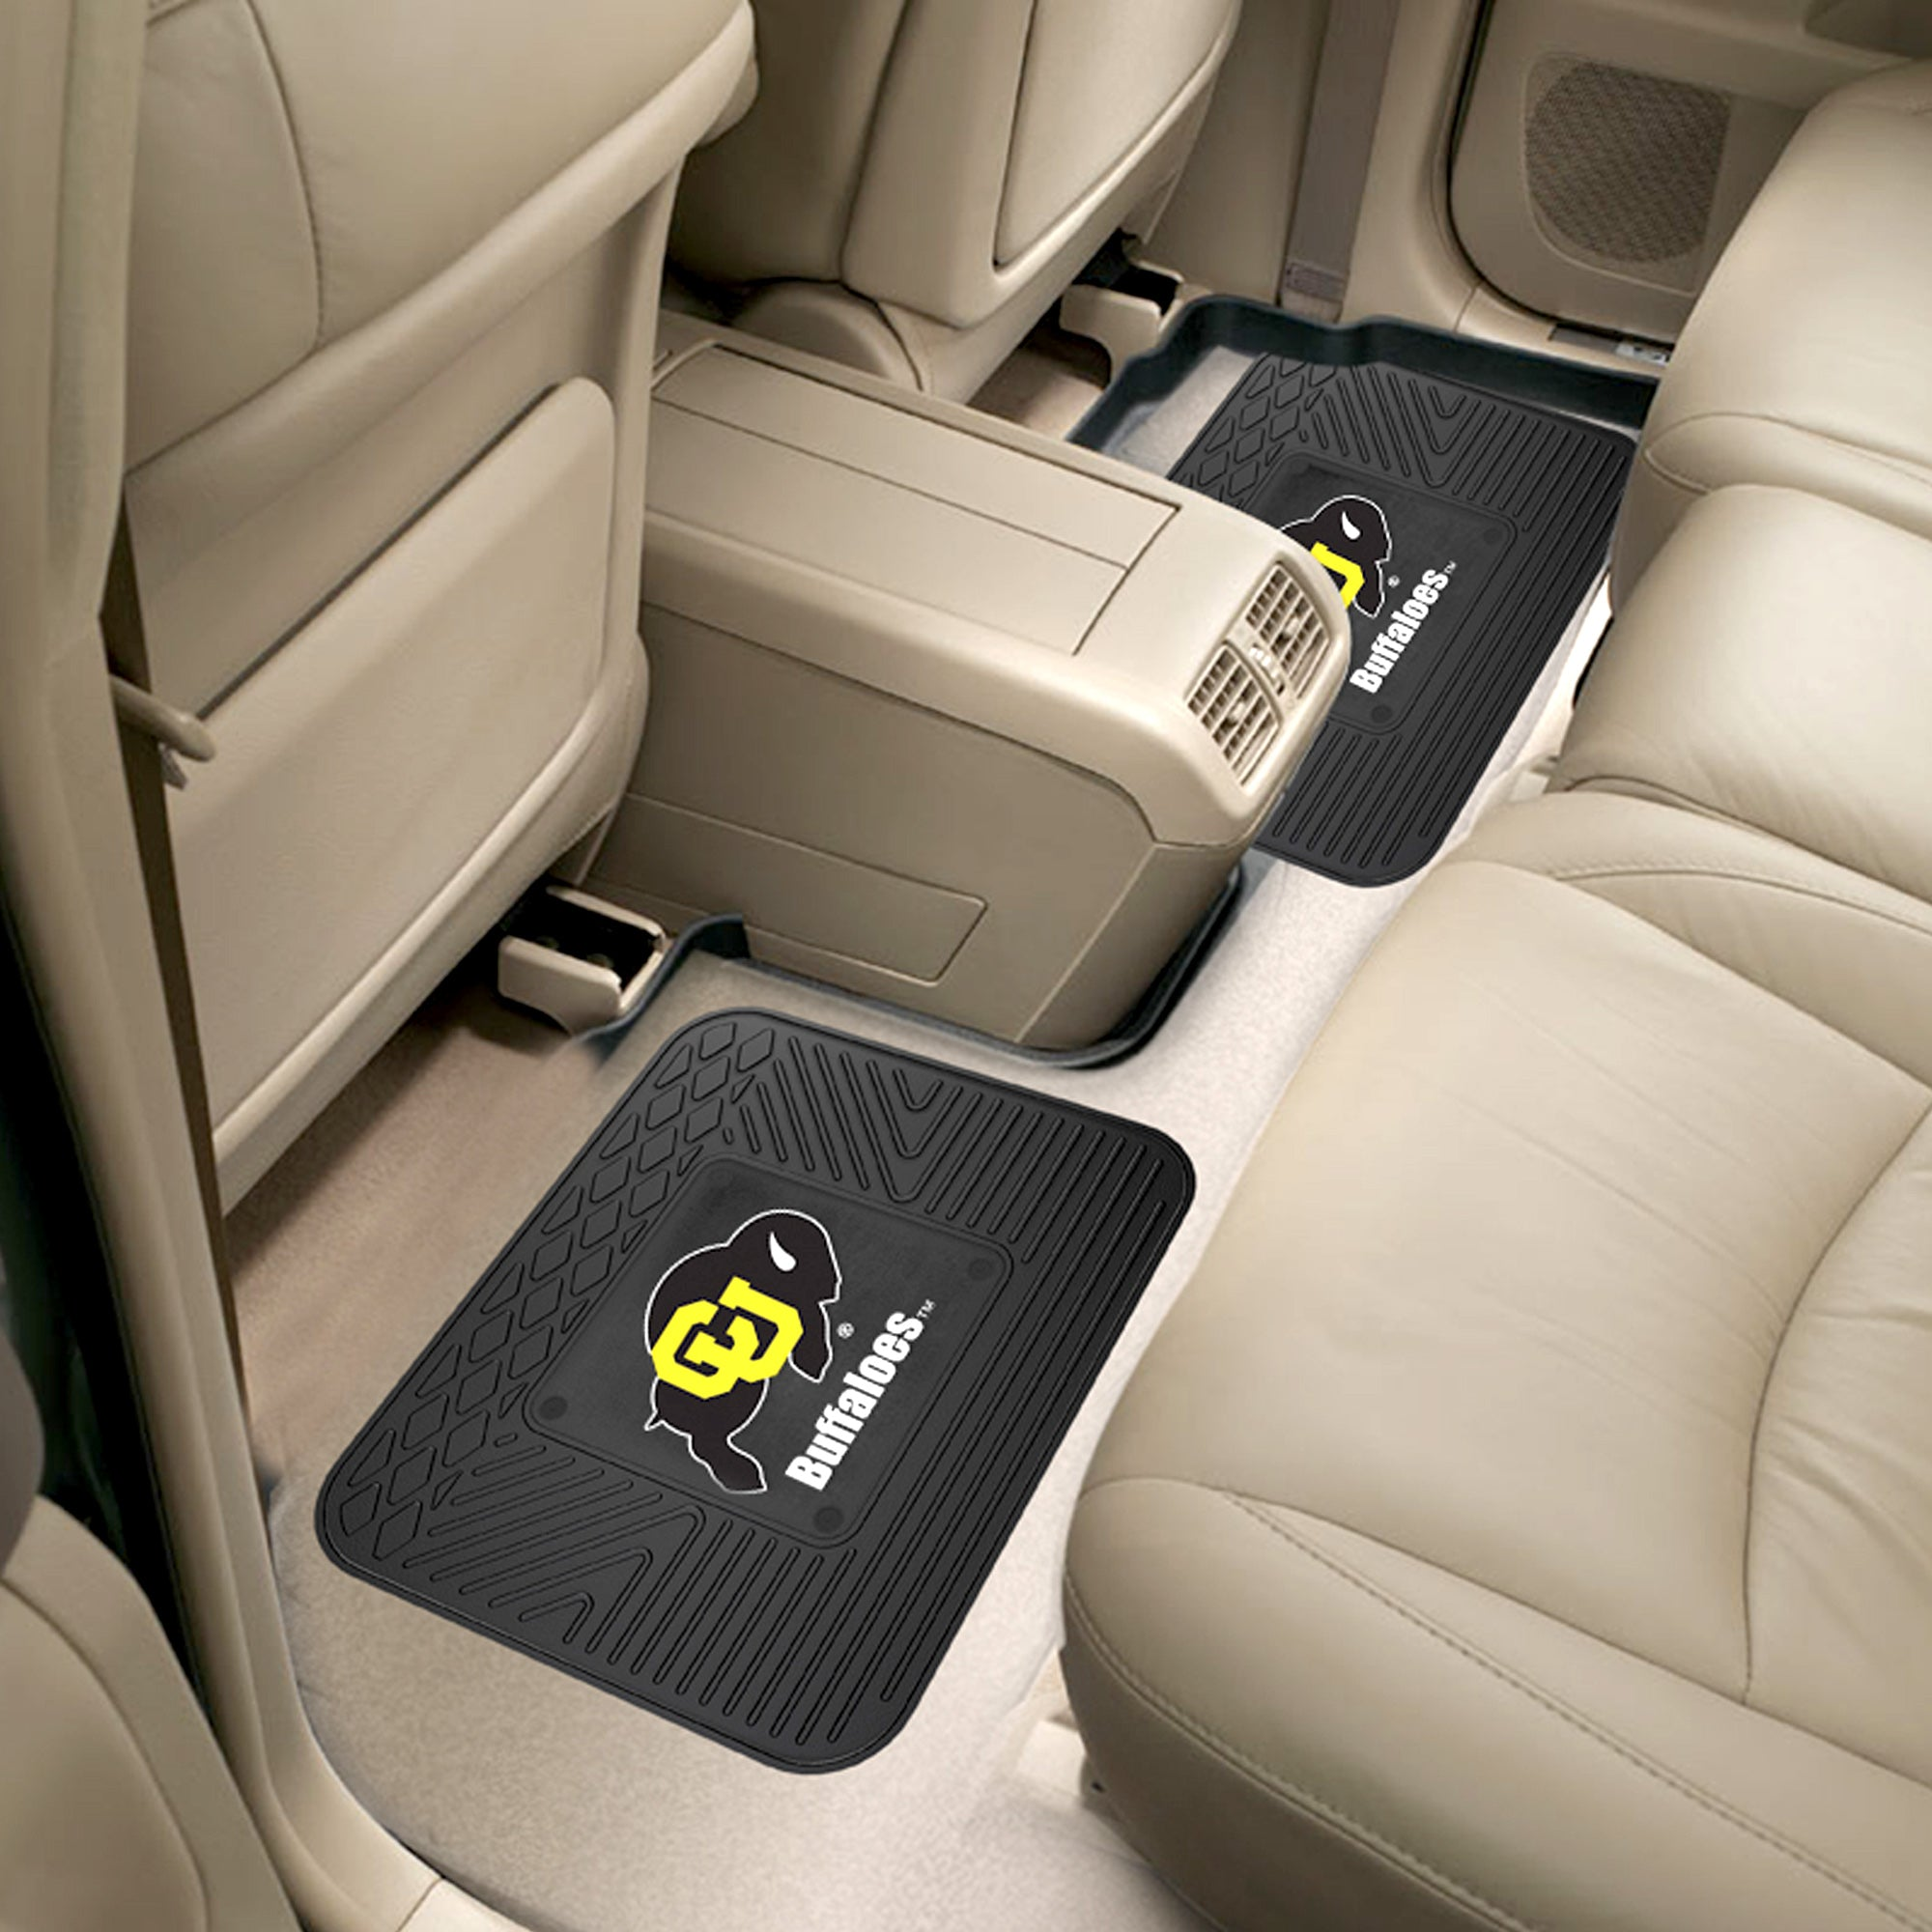 University of Colorado 2 Utility Car Mats